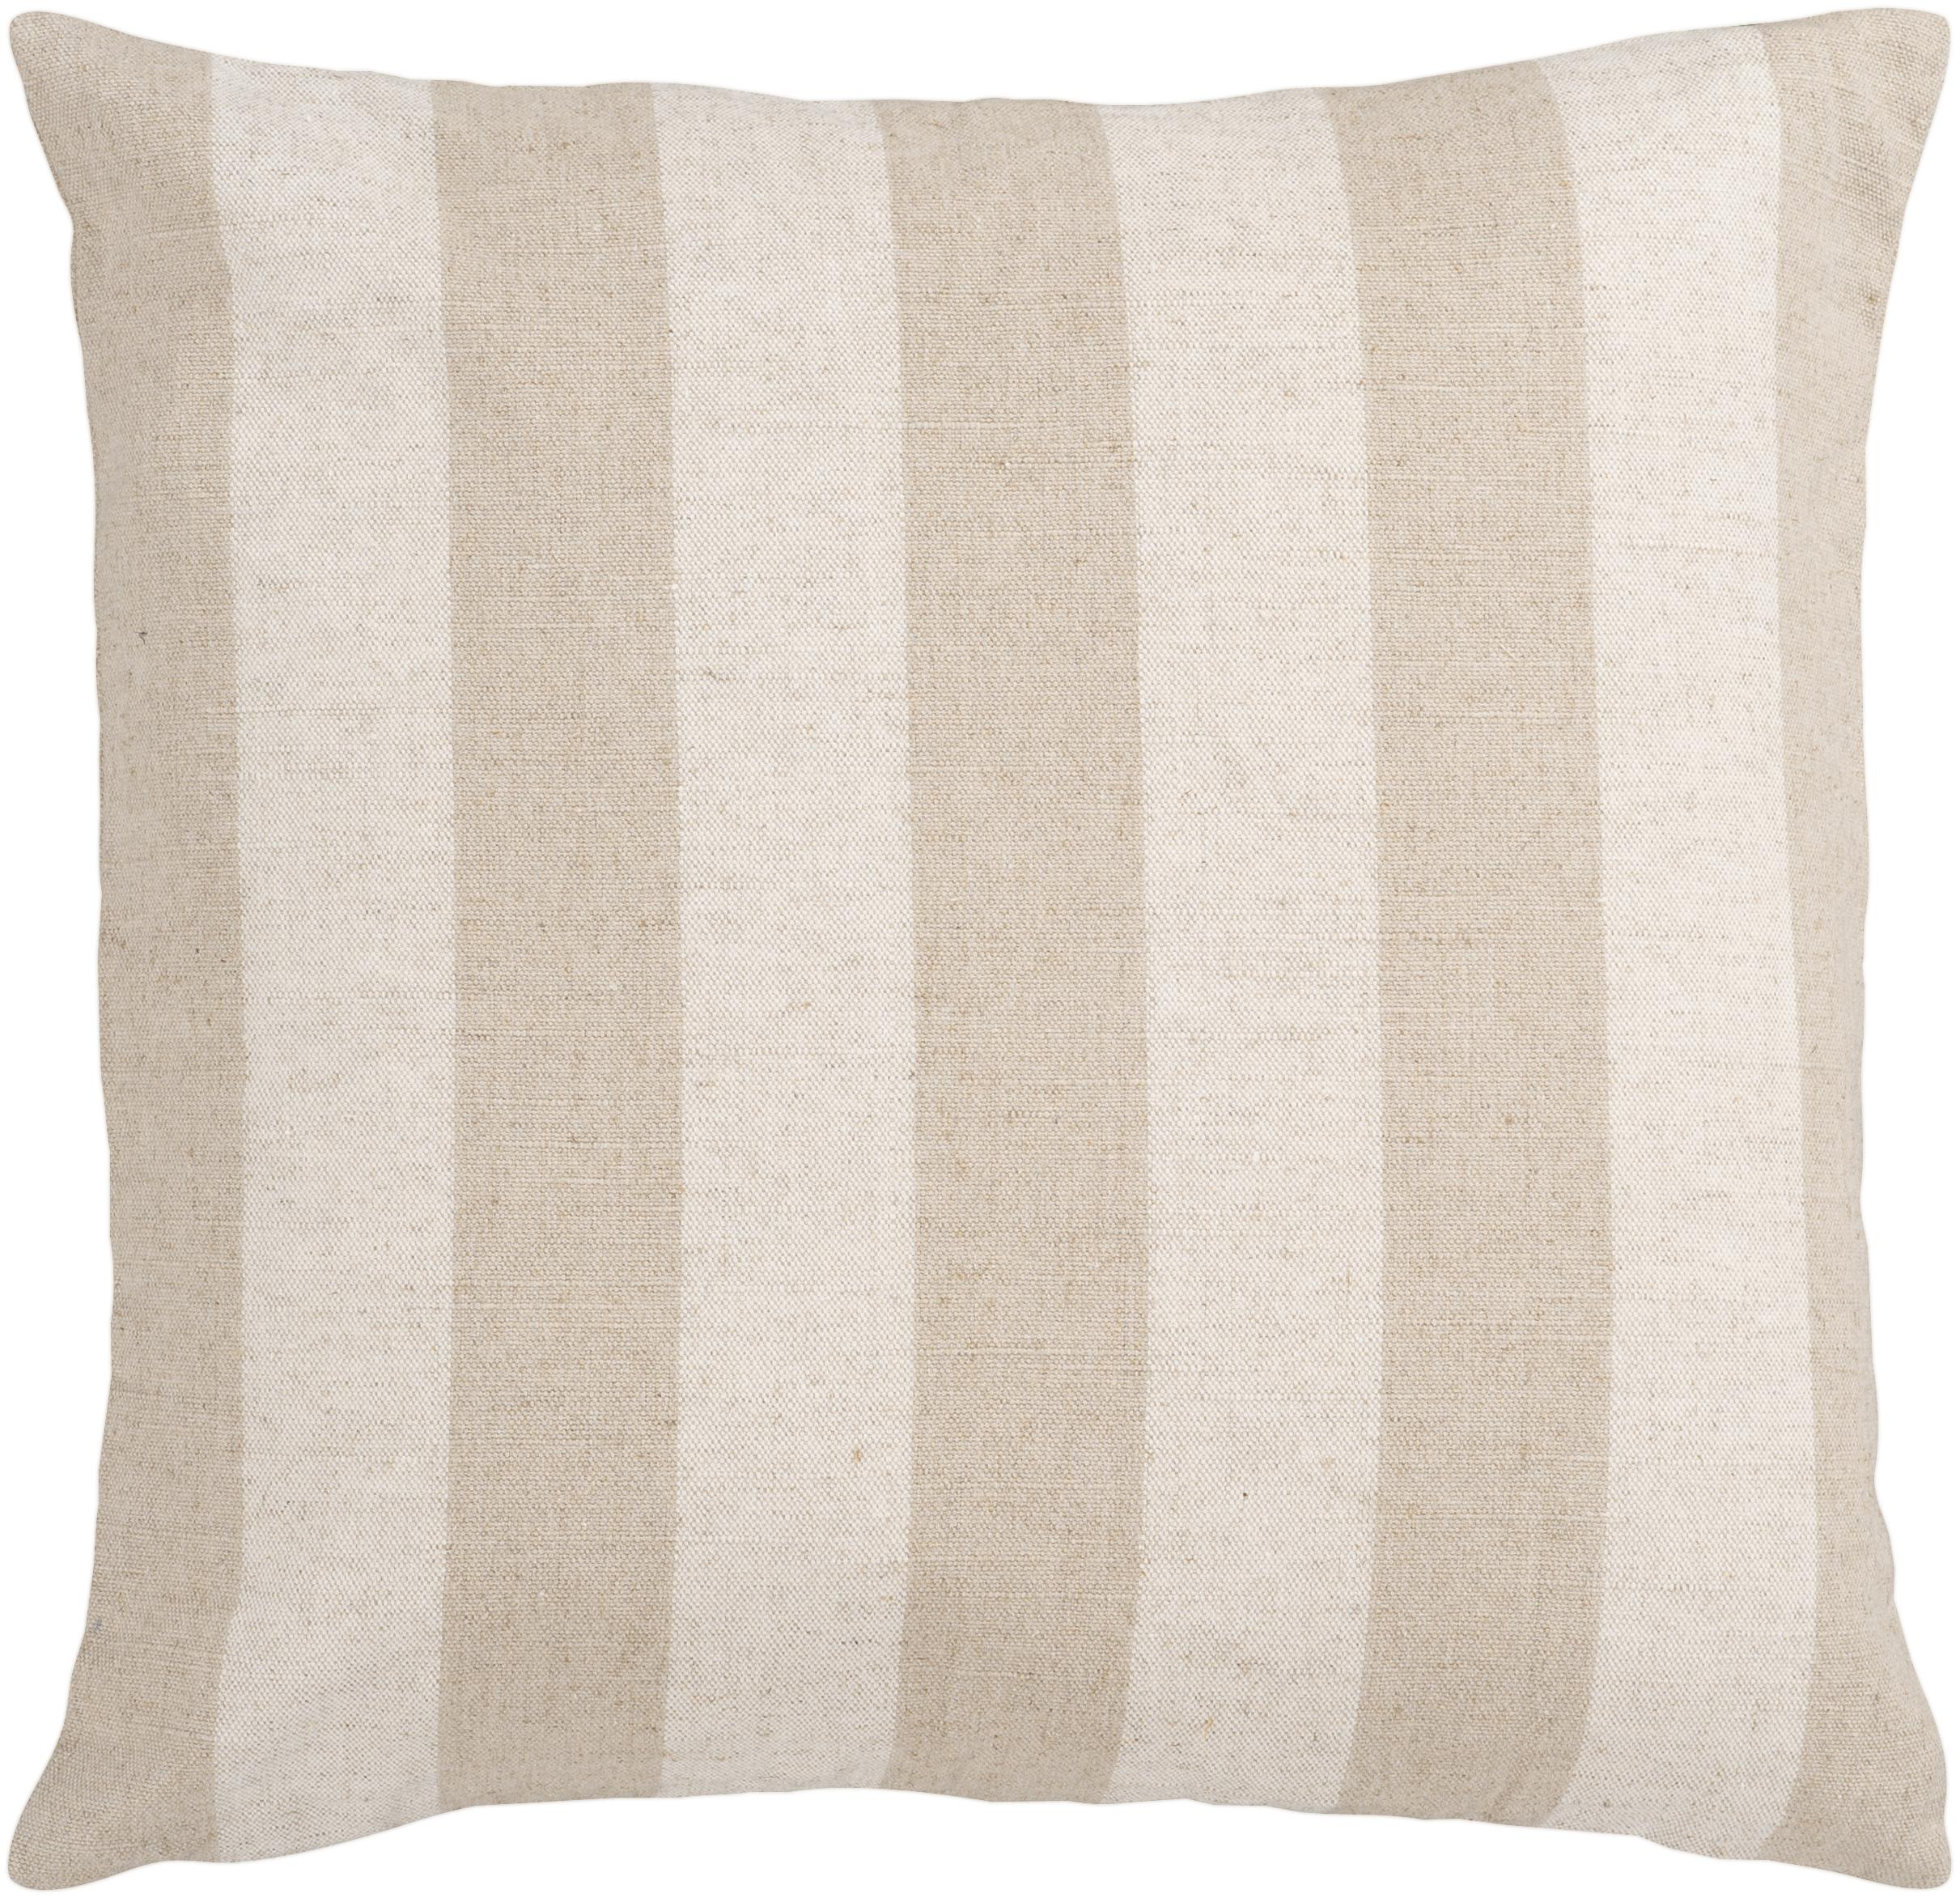 "Surya Pillows 18"" x 18"" Pillow - Item Number: JS015-1818P"